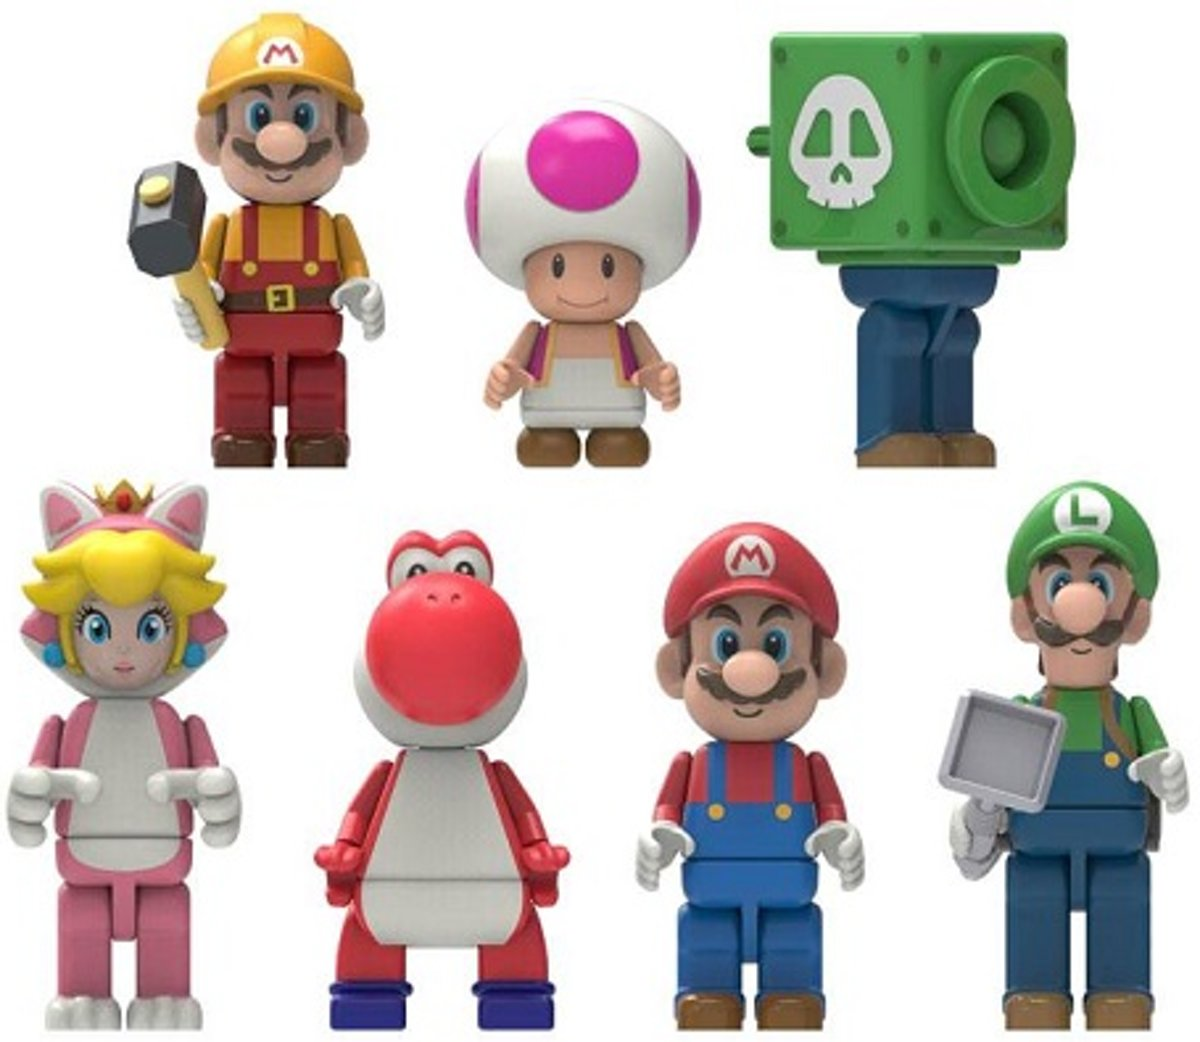 7x Knex Super Mario Blind bag figuurtjes set (+/-5 cm).